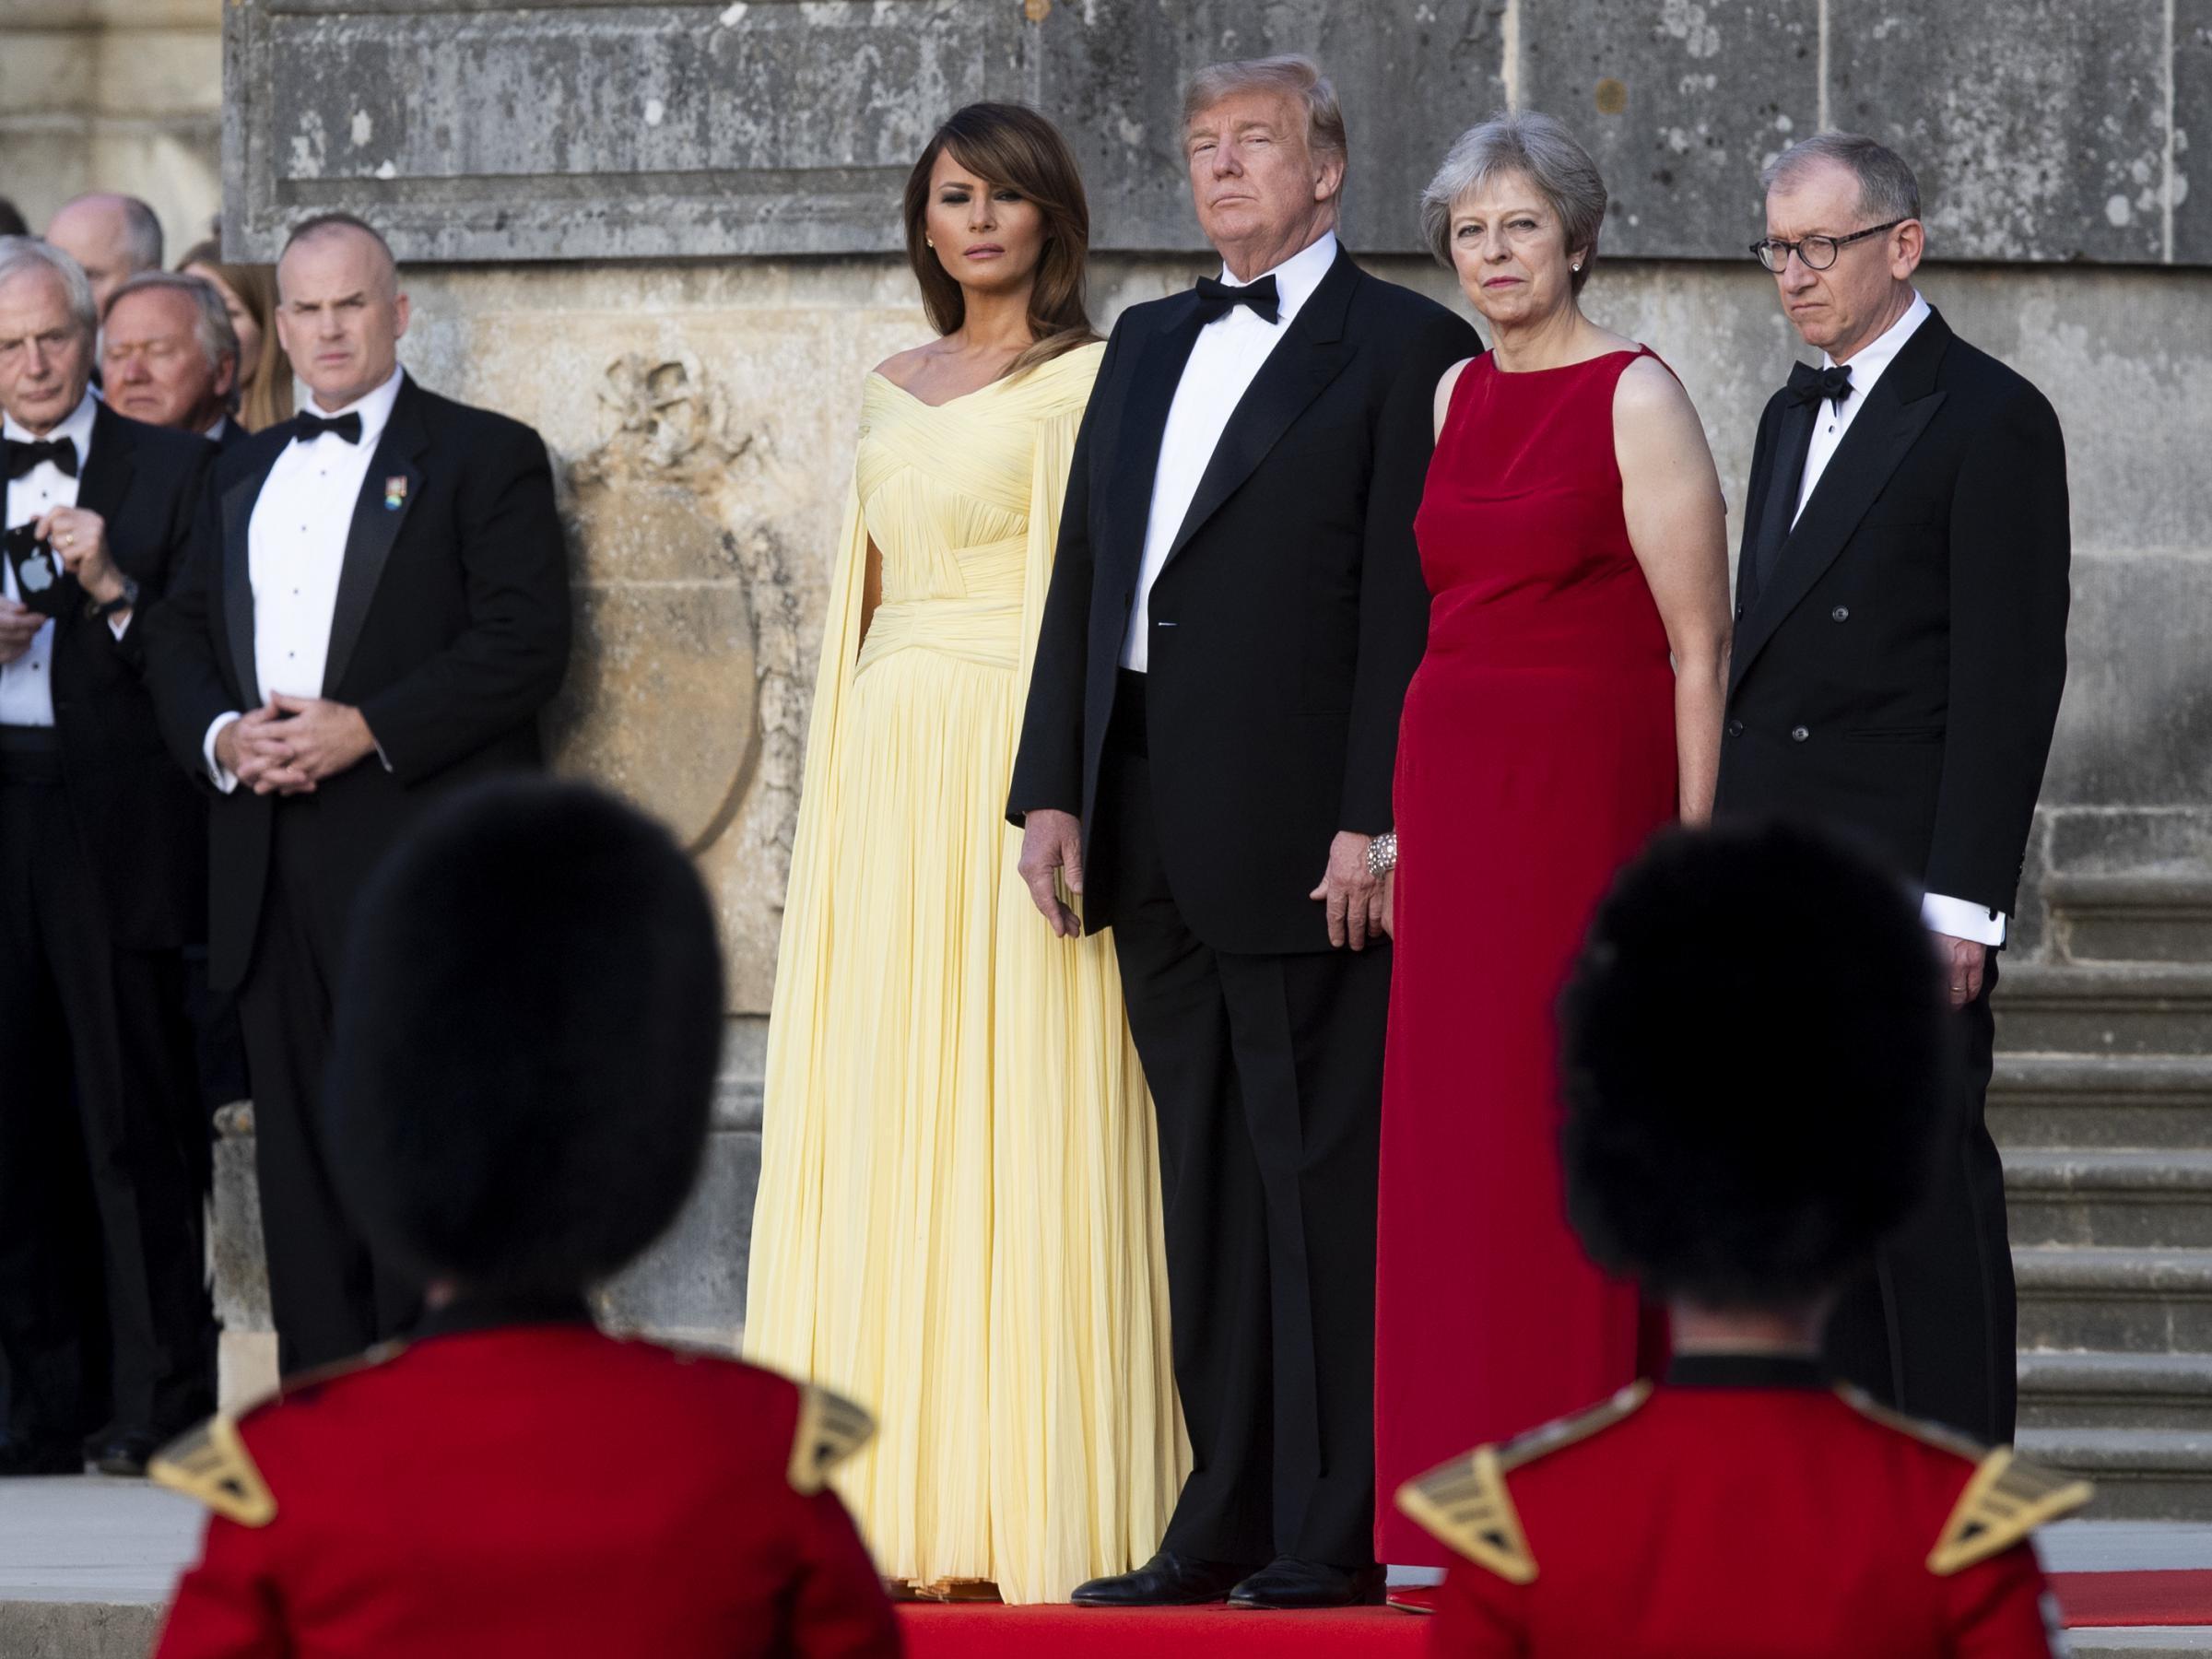 U.S. first lady Melania Trump President Trump British Prime Minister Theresa May and her husband Philip May watch a live military performance ahead of a dinner in Oxfordshire U.K. on Thursday